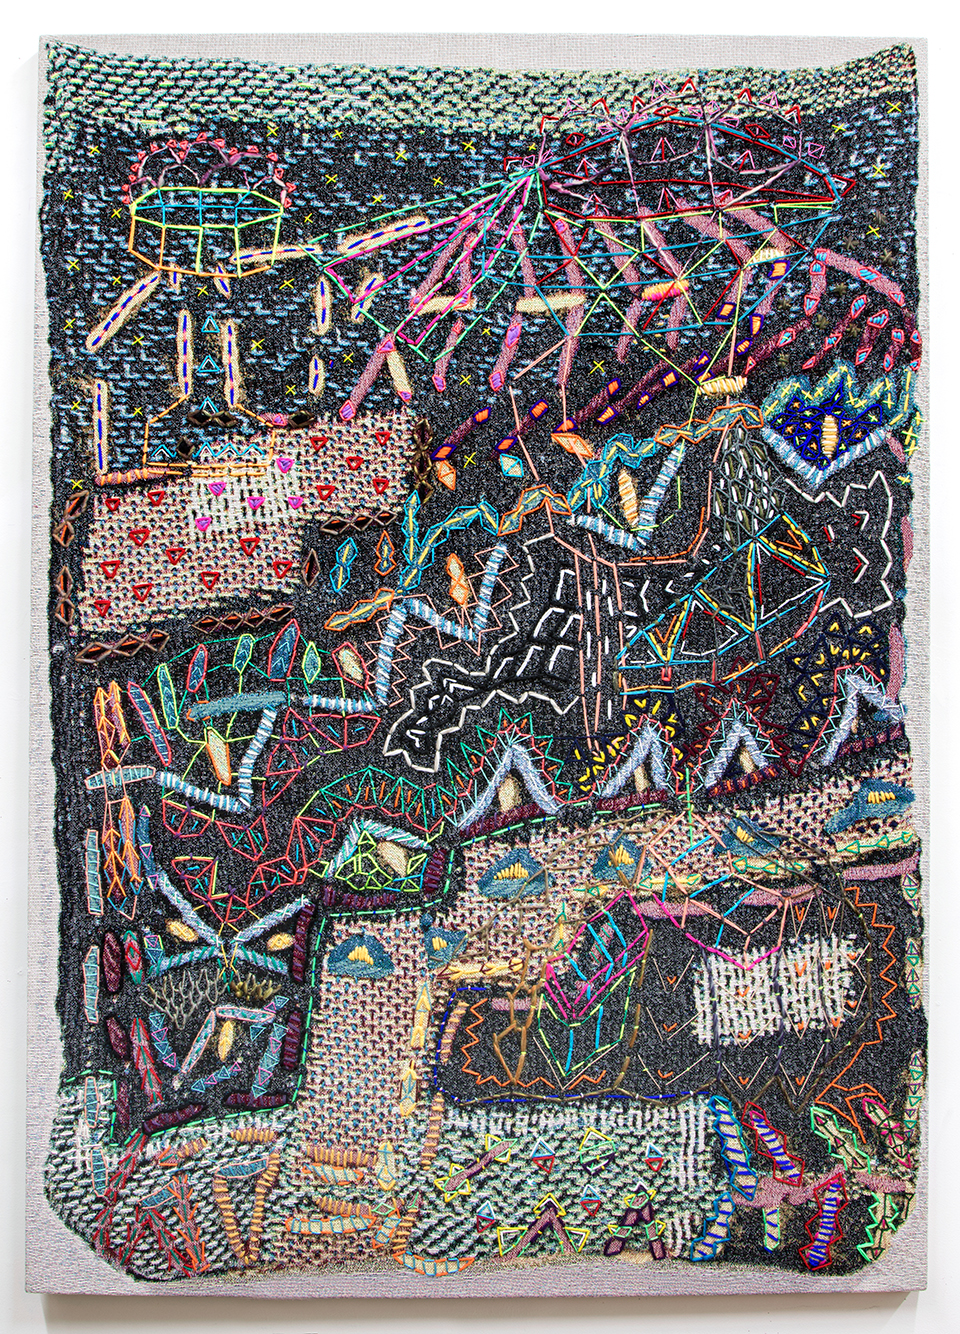 Sampler, Planthouse Gallery, 2018